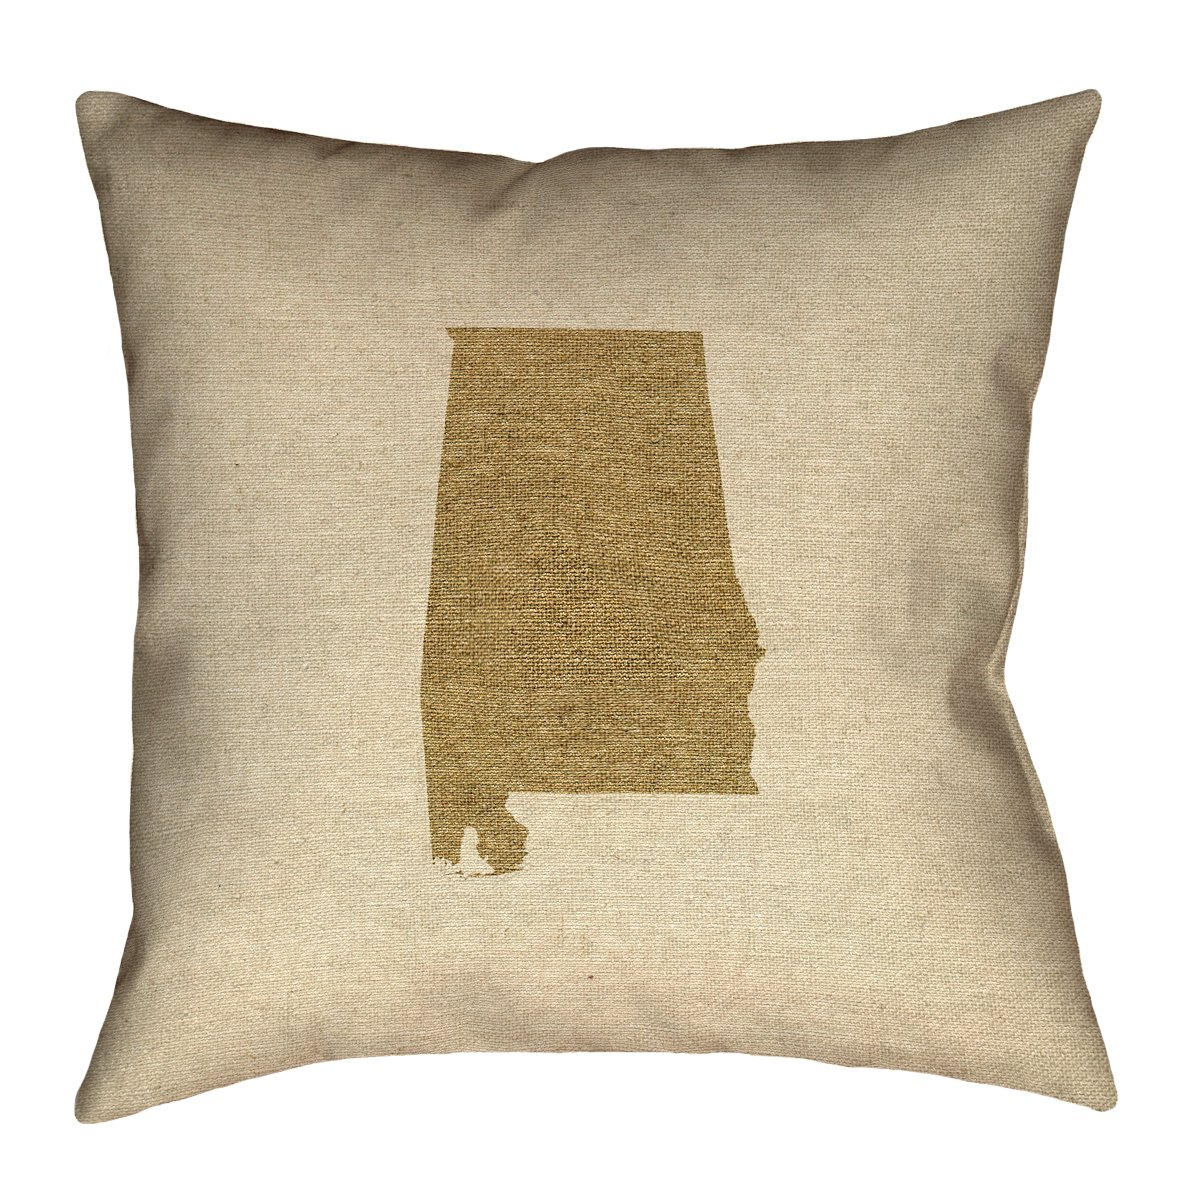 ArtVerse Katelyn Smith 14 x 14 Poly Twill Double Sided Print with Concealed Zipper /& Insert Alabama Canvas Pillow